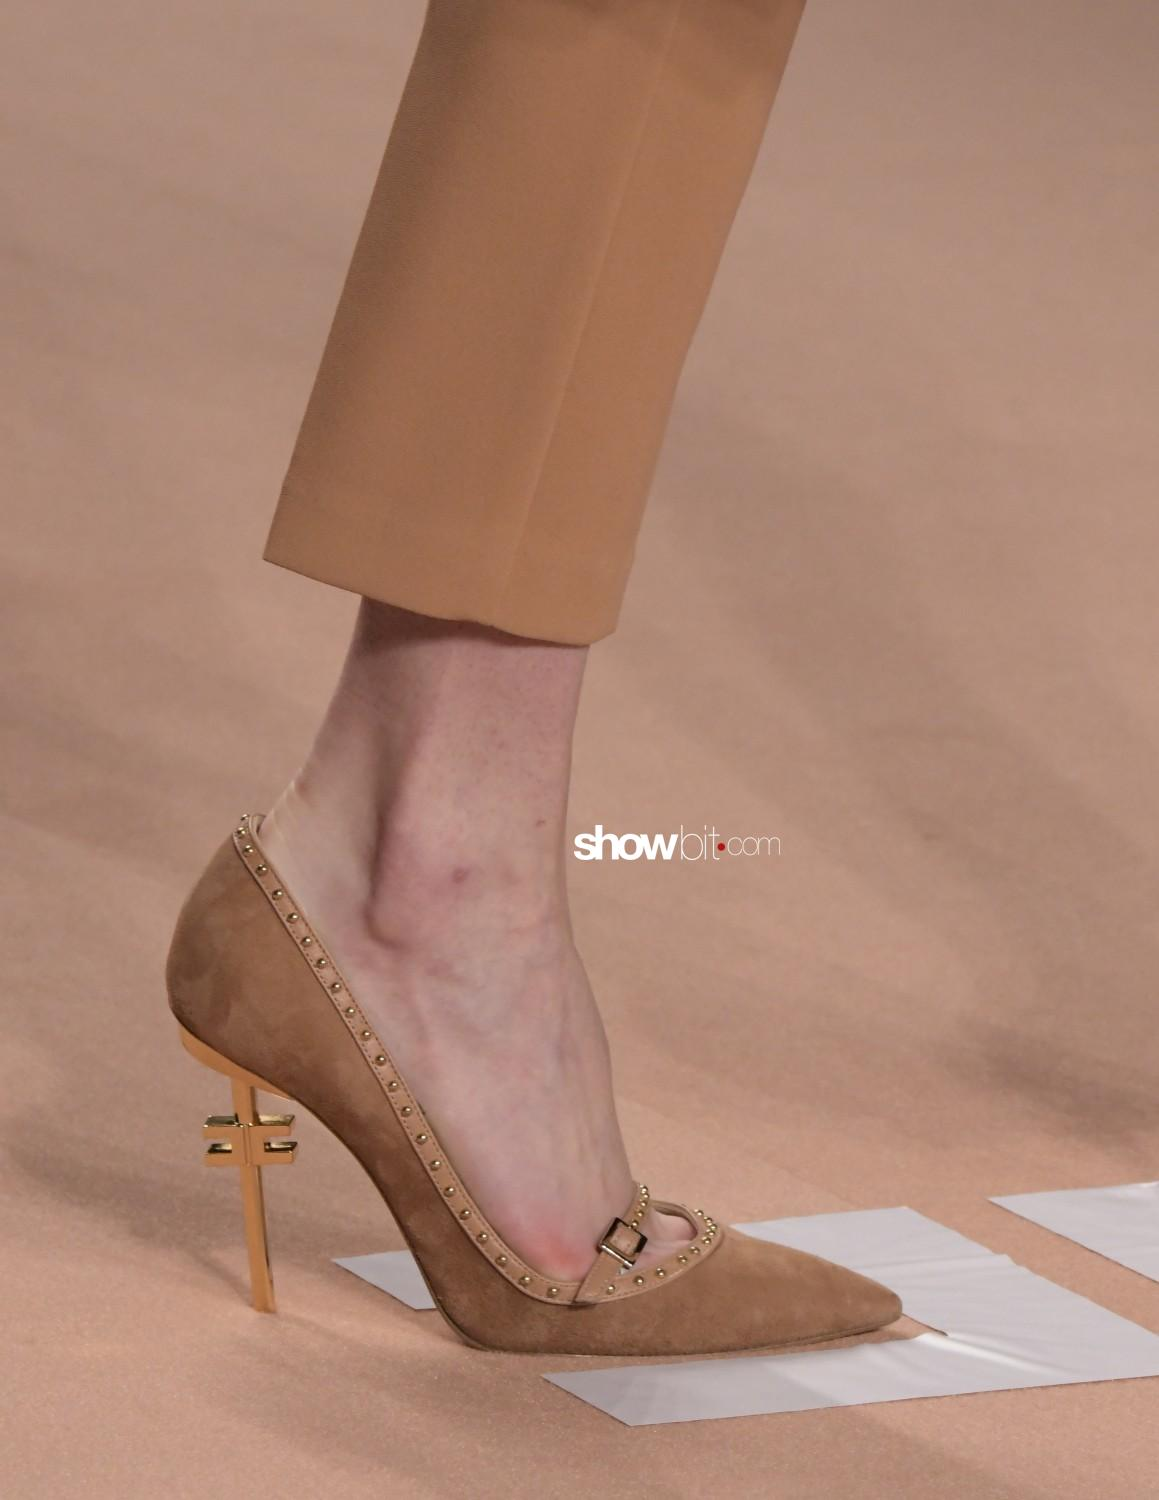 Elisabetta Franchi close-up Women Fall Winter 2020 Milano shoes